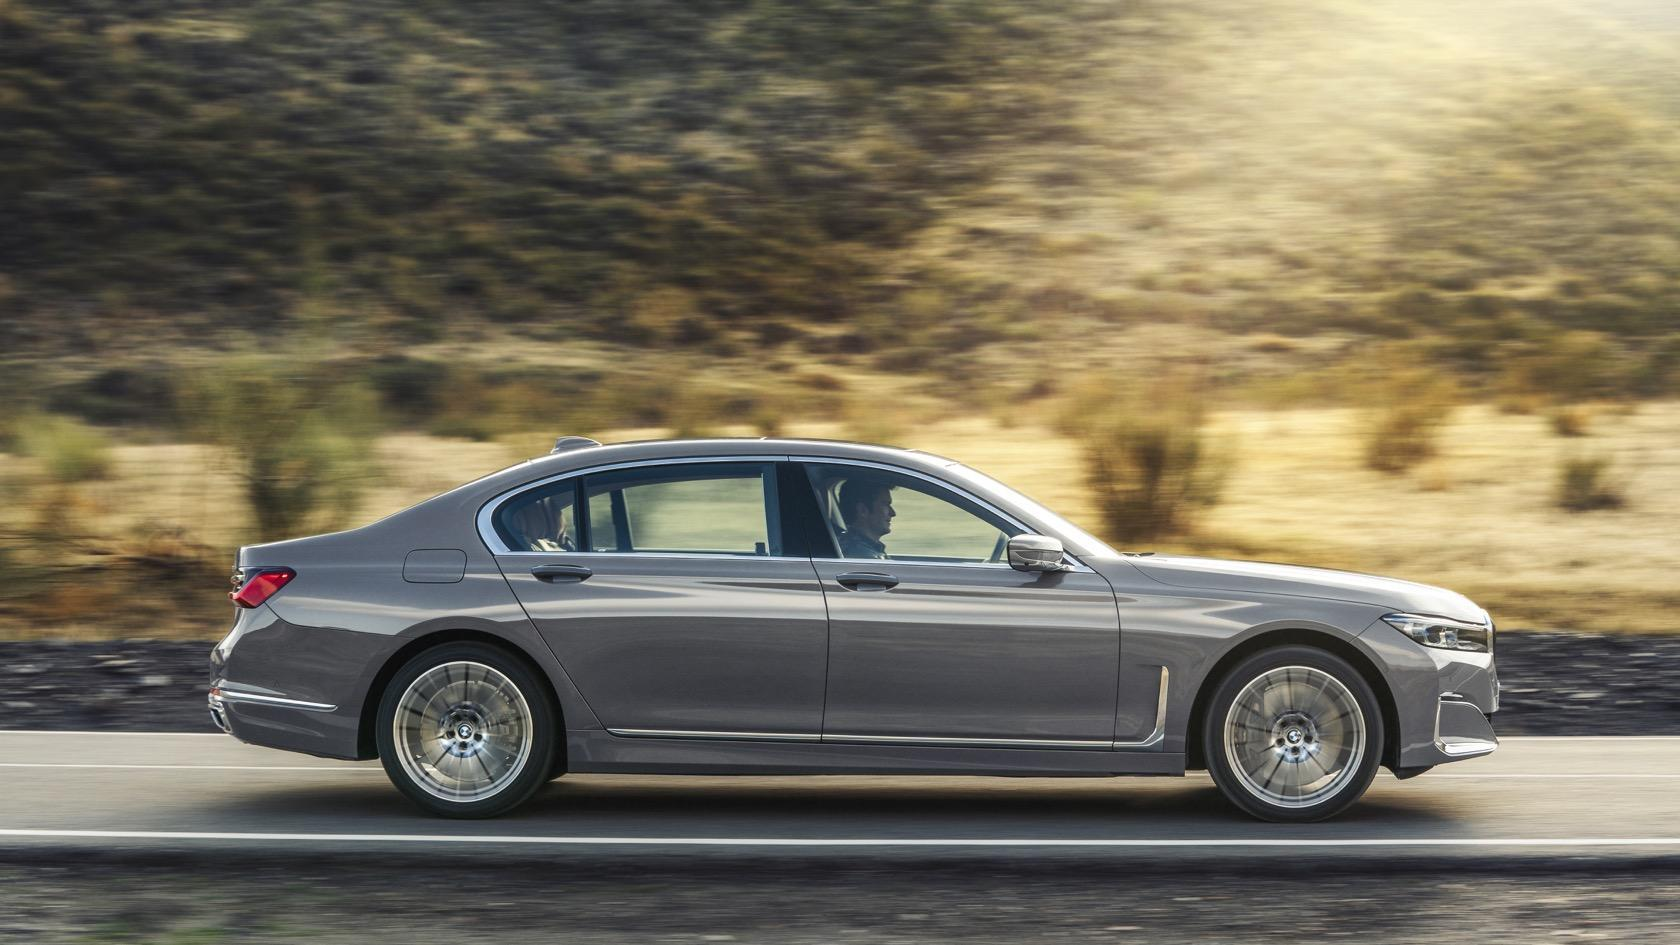 hight resolution of then there s the 3 0 liter six cylinder inline engine in the 2020 bmw 740i and 740i xdrive that gets a twin scroll turbocharger and delivers 335hp and 330